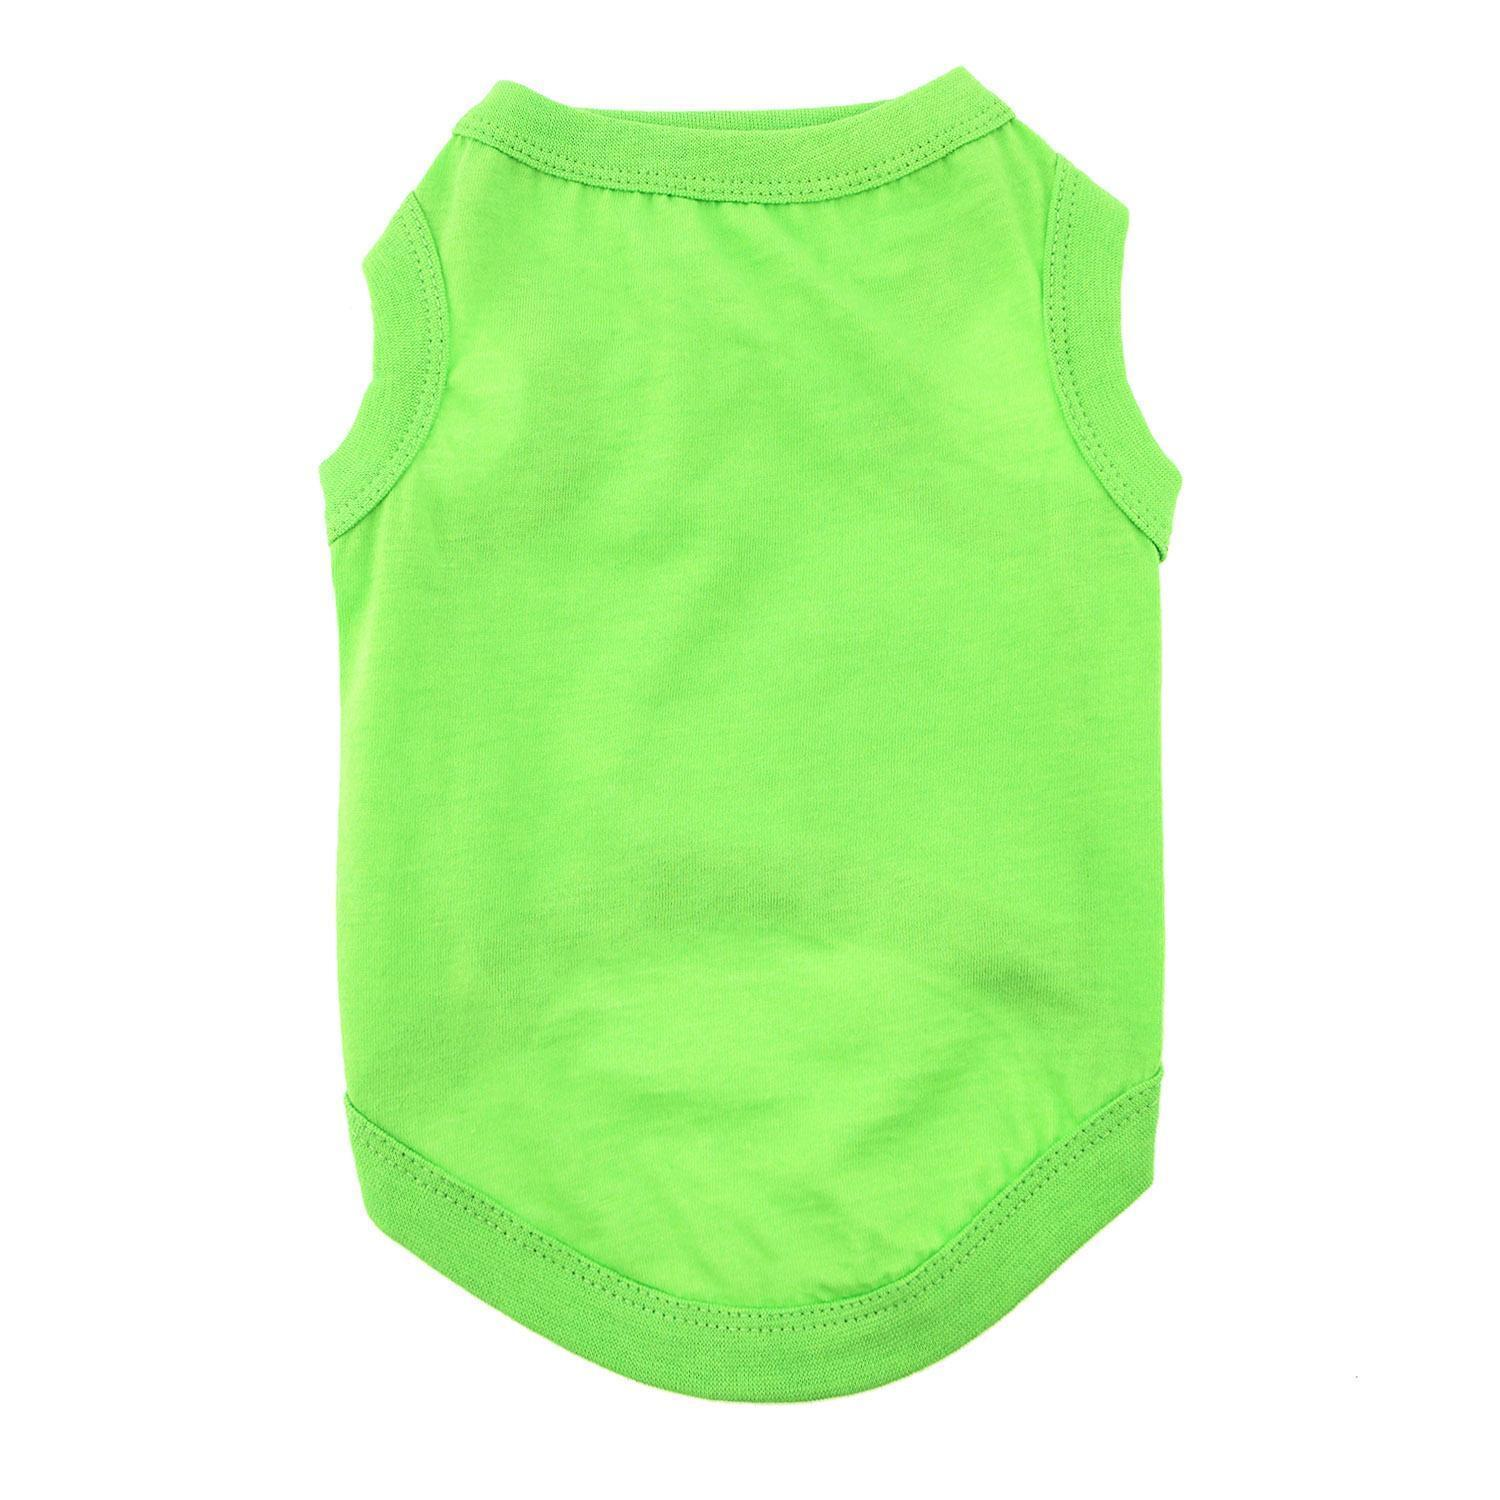 Cotton Dog Tank - Green Flash-DirtyFurClothing-DirtyFurClothing